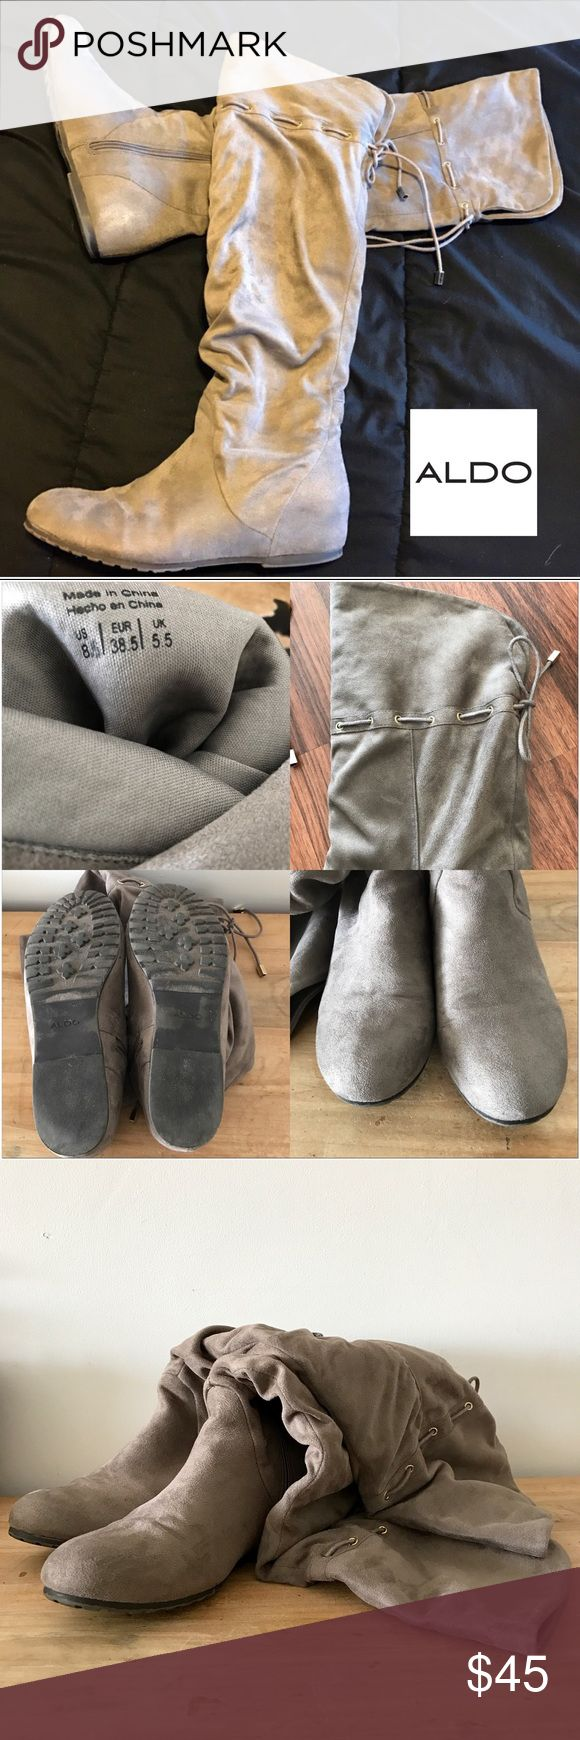 Over the knee microfiber gray Aldo boots size 8.5 Over the knee microfiber gray Aldo boots size 8.5 This is like new, only wear once, no marks or stretch at all, beautiful gray color.  Smoke free home, no trade. Aldo Shoes Over the Knee Boots